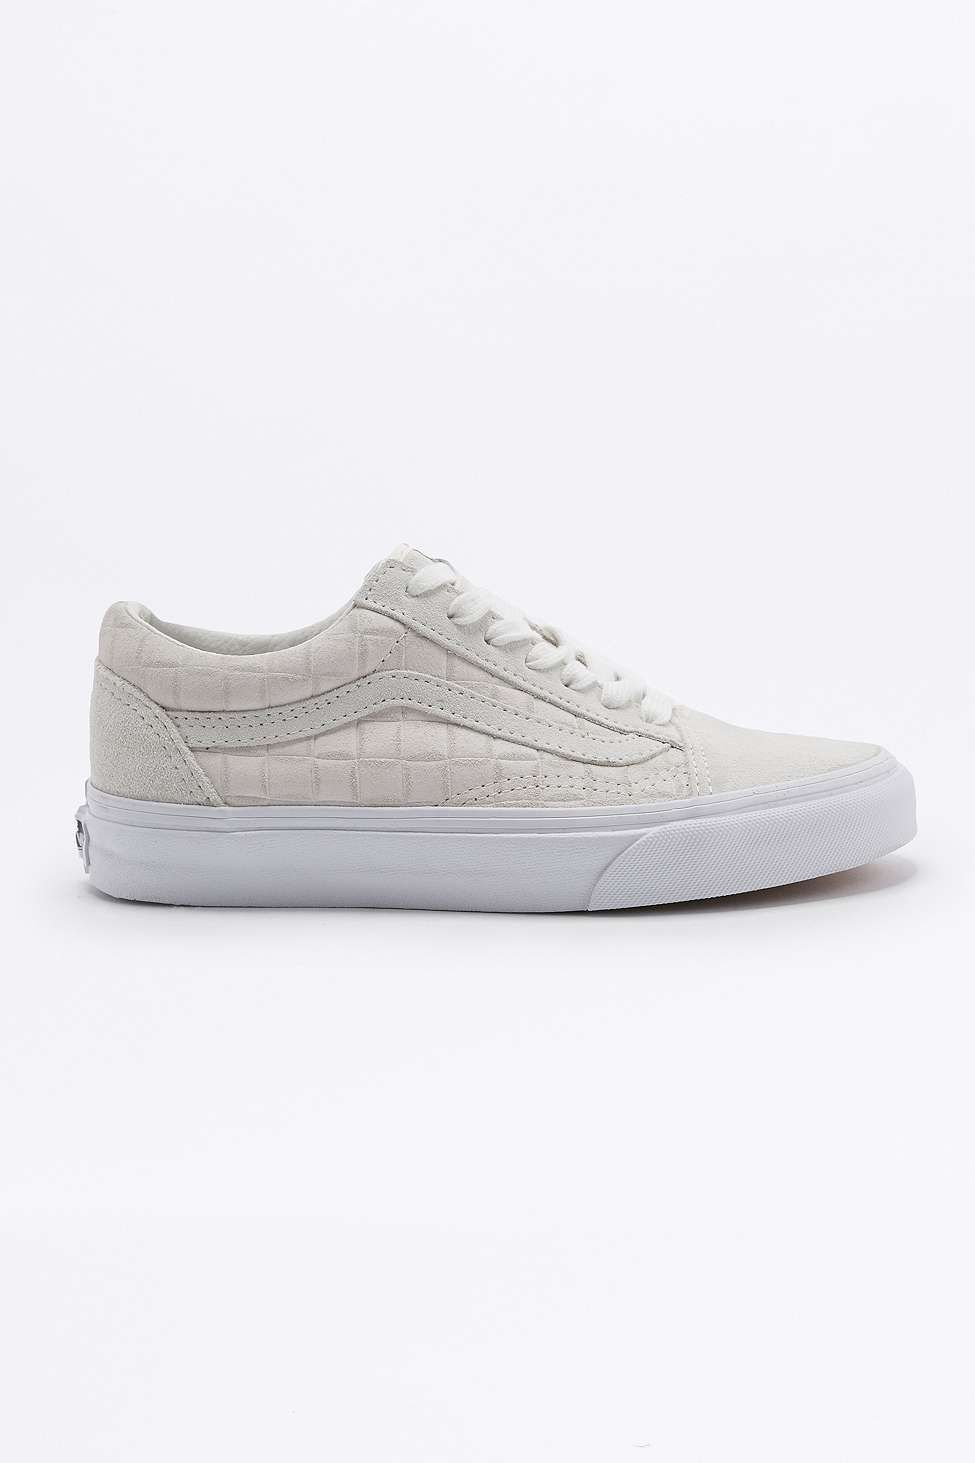 Vans Old Skool Off-White Checked Suede Trainers - Urban Outfitters